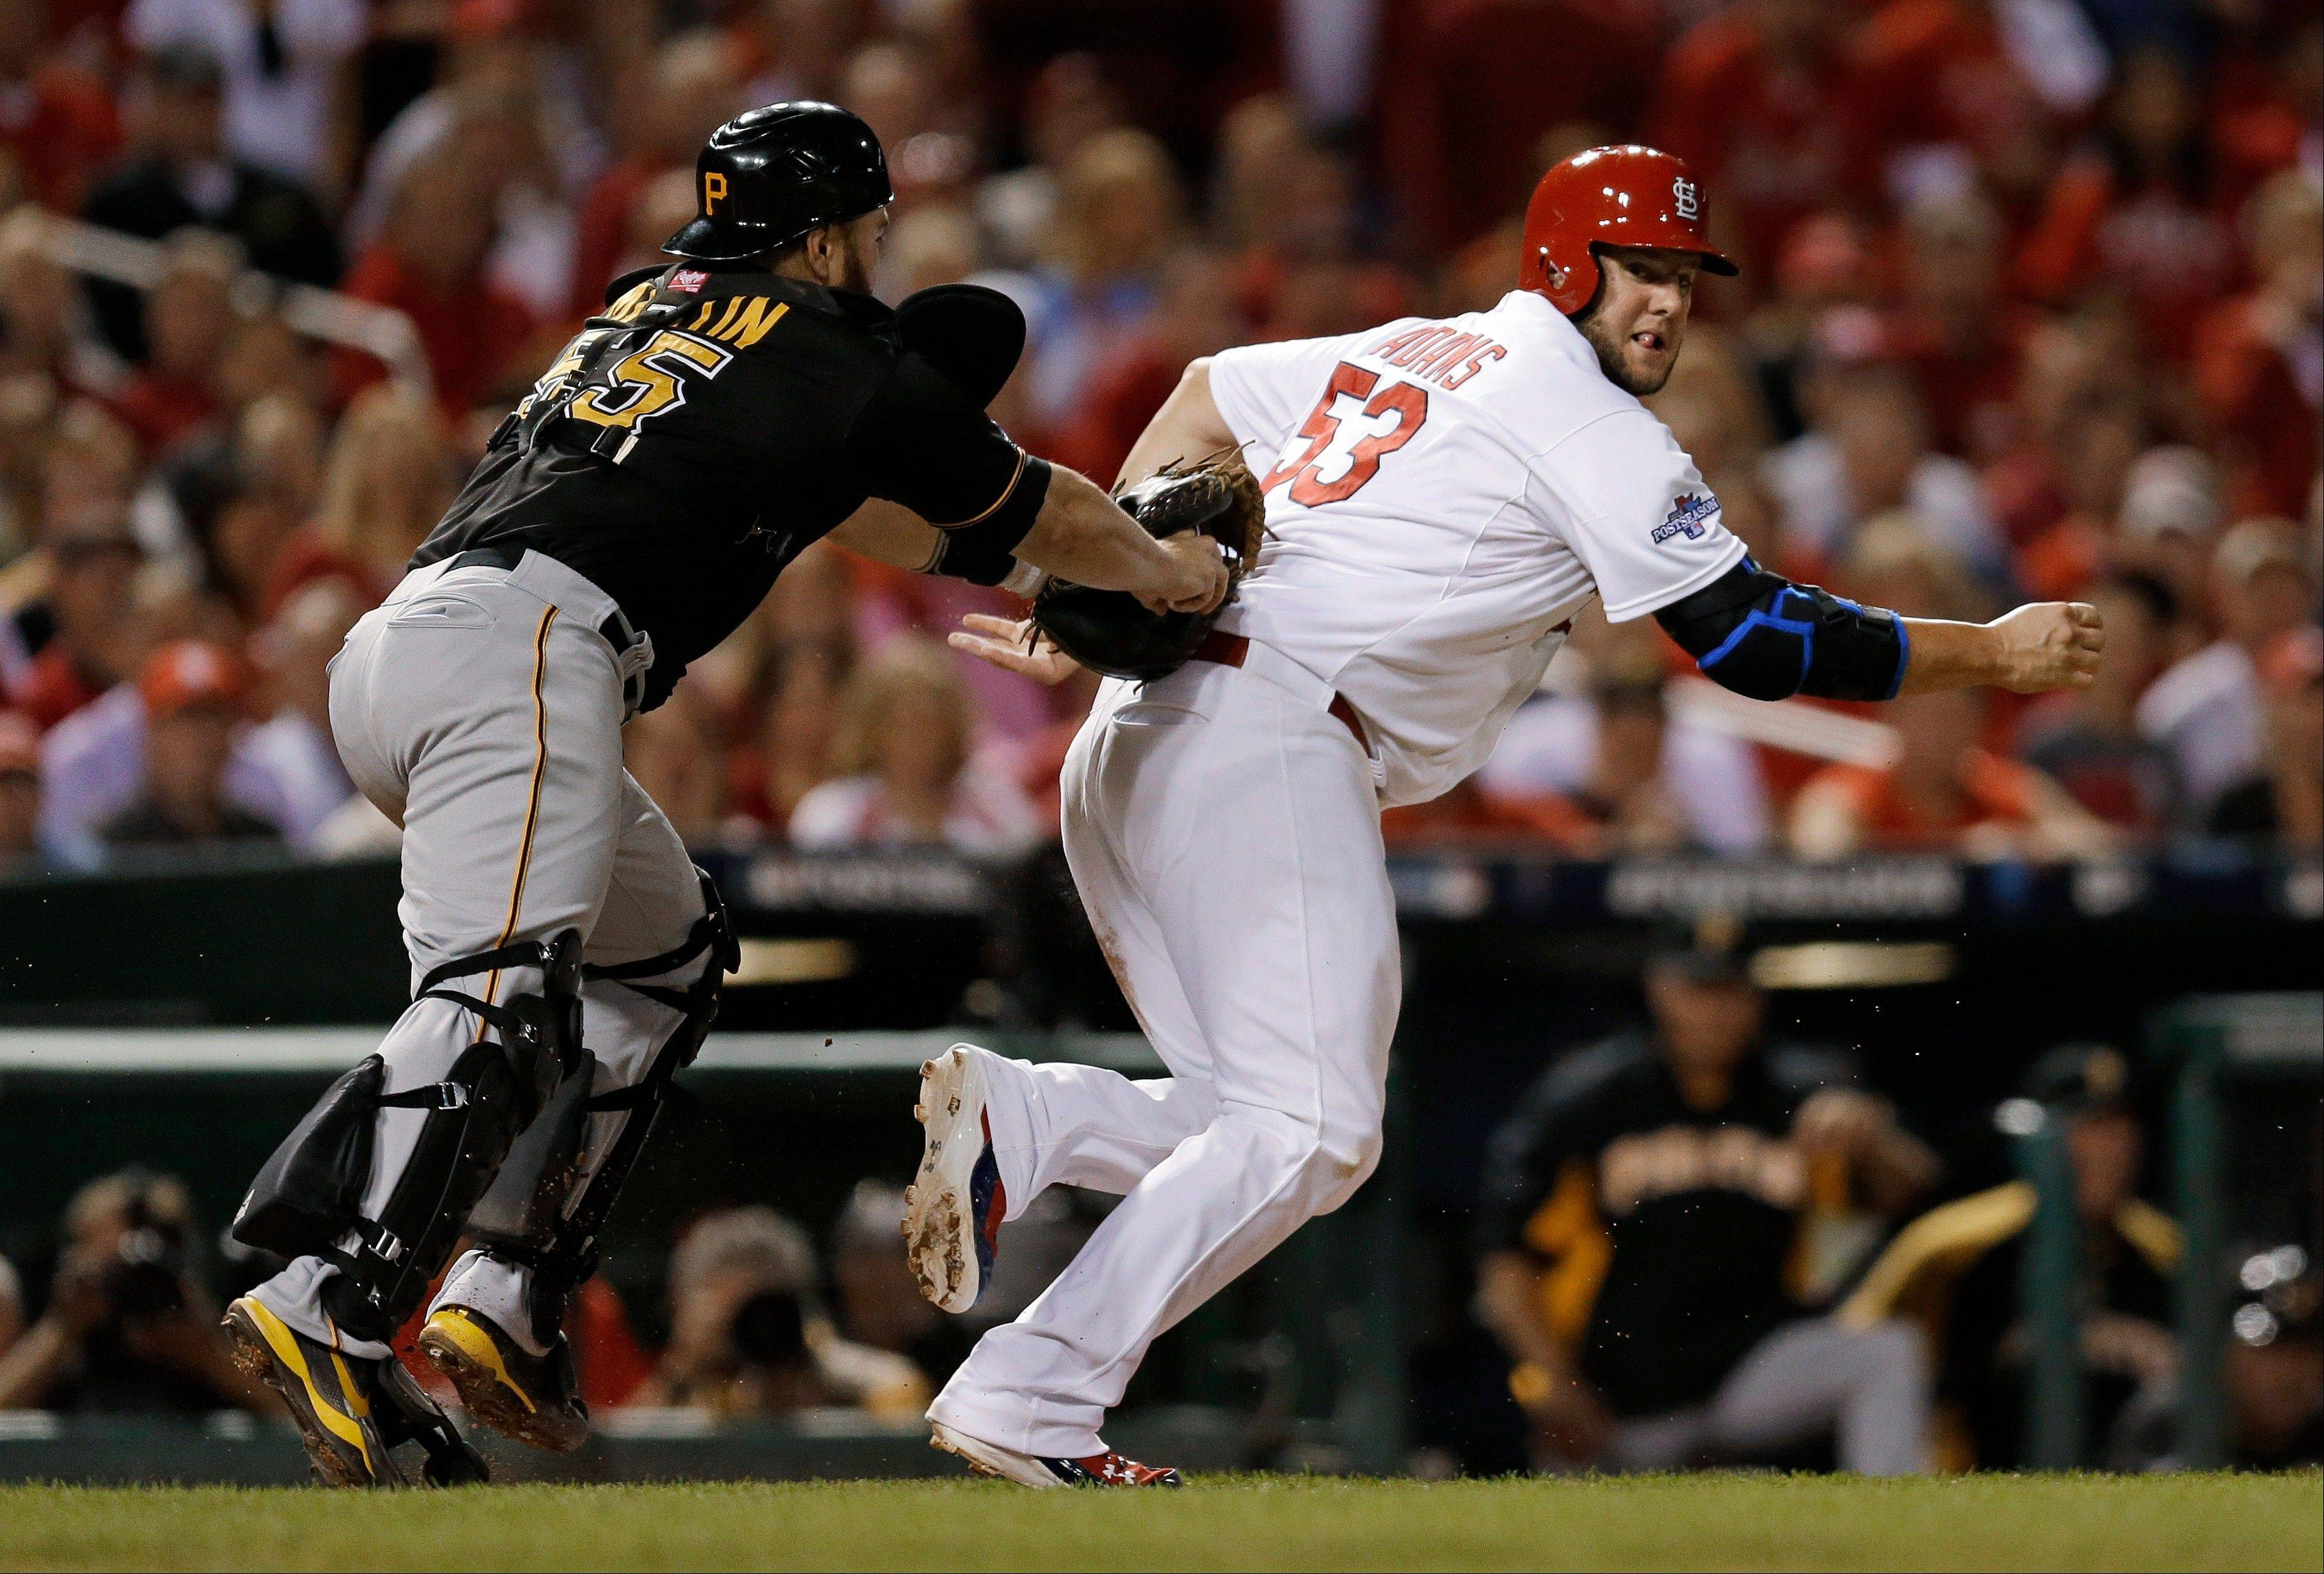 The Cardinals' Matt Adams is tagged out by the Pirates' Russell Martin in the fourth inning of Game 5 in St. Louis. Adams was caught between third and home on a ground ball by Jon Jay.